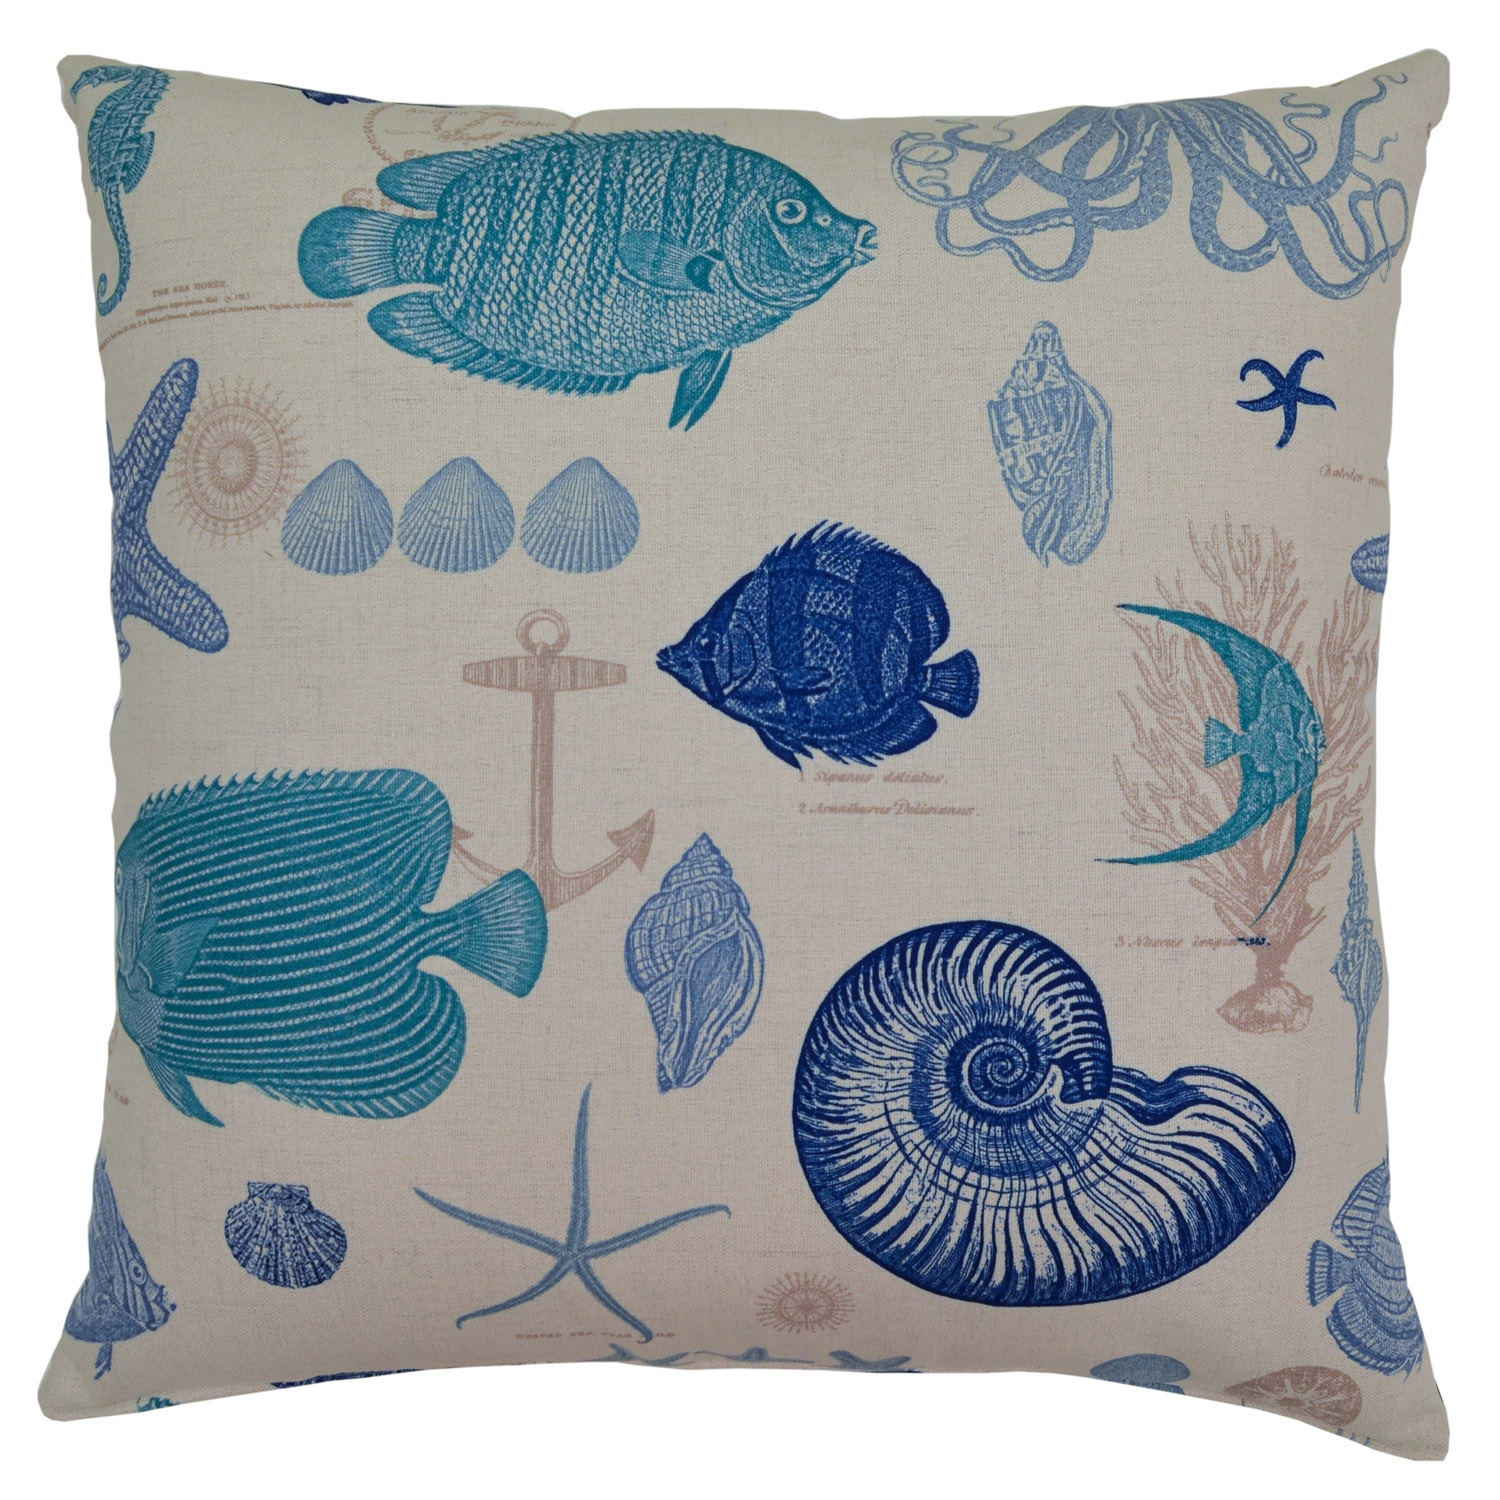 By The Sea Blue Pillow